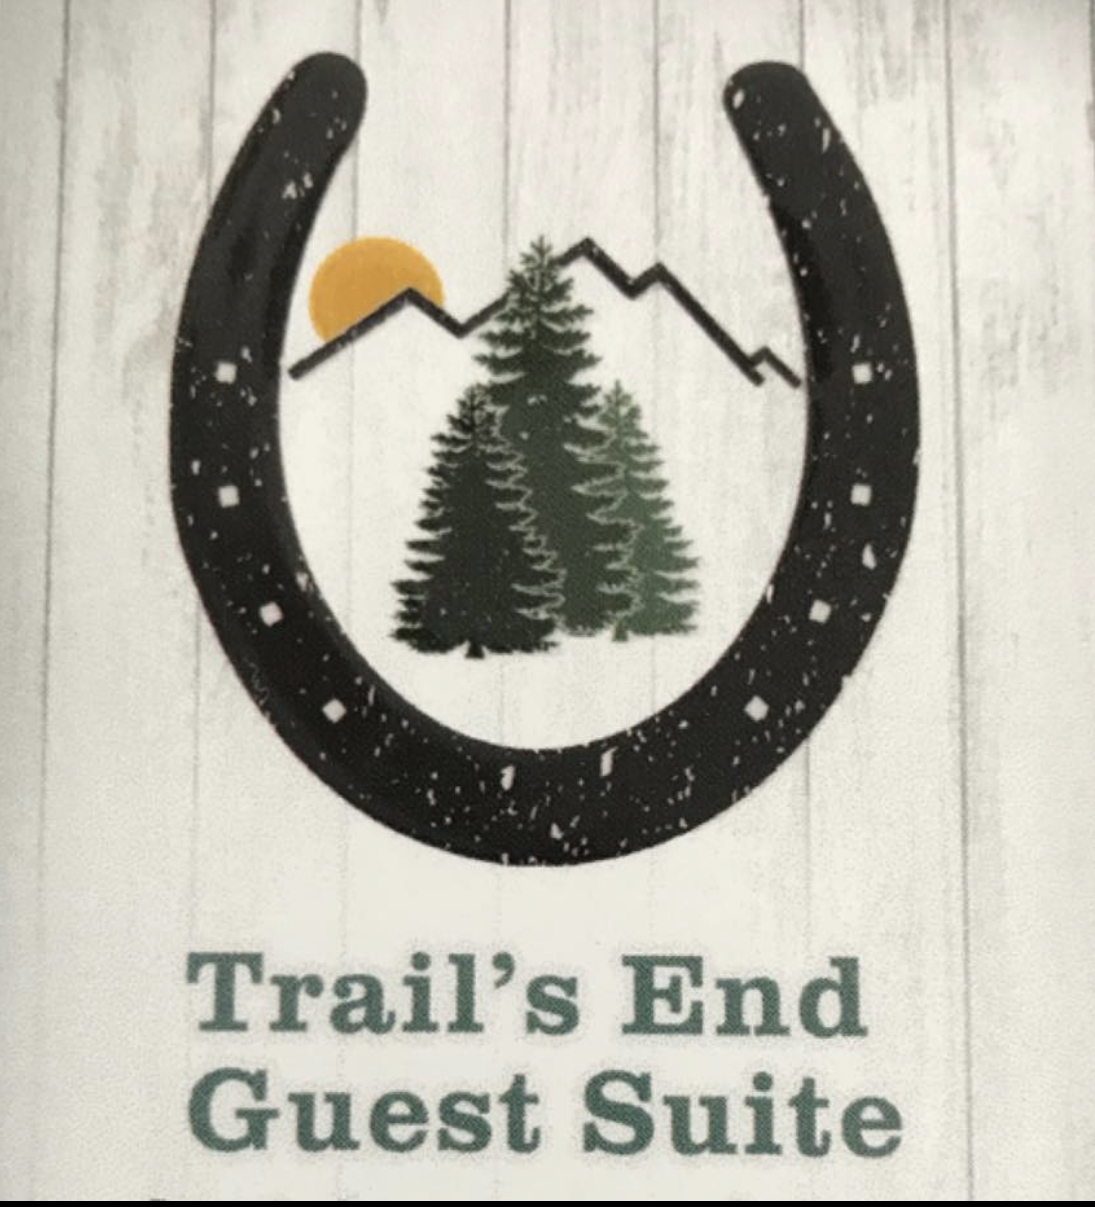 Trail's End Guest Suite - image on stayinjasper.com